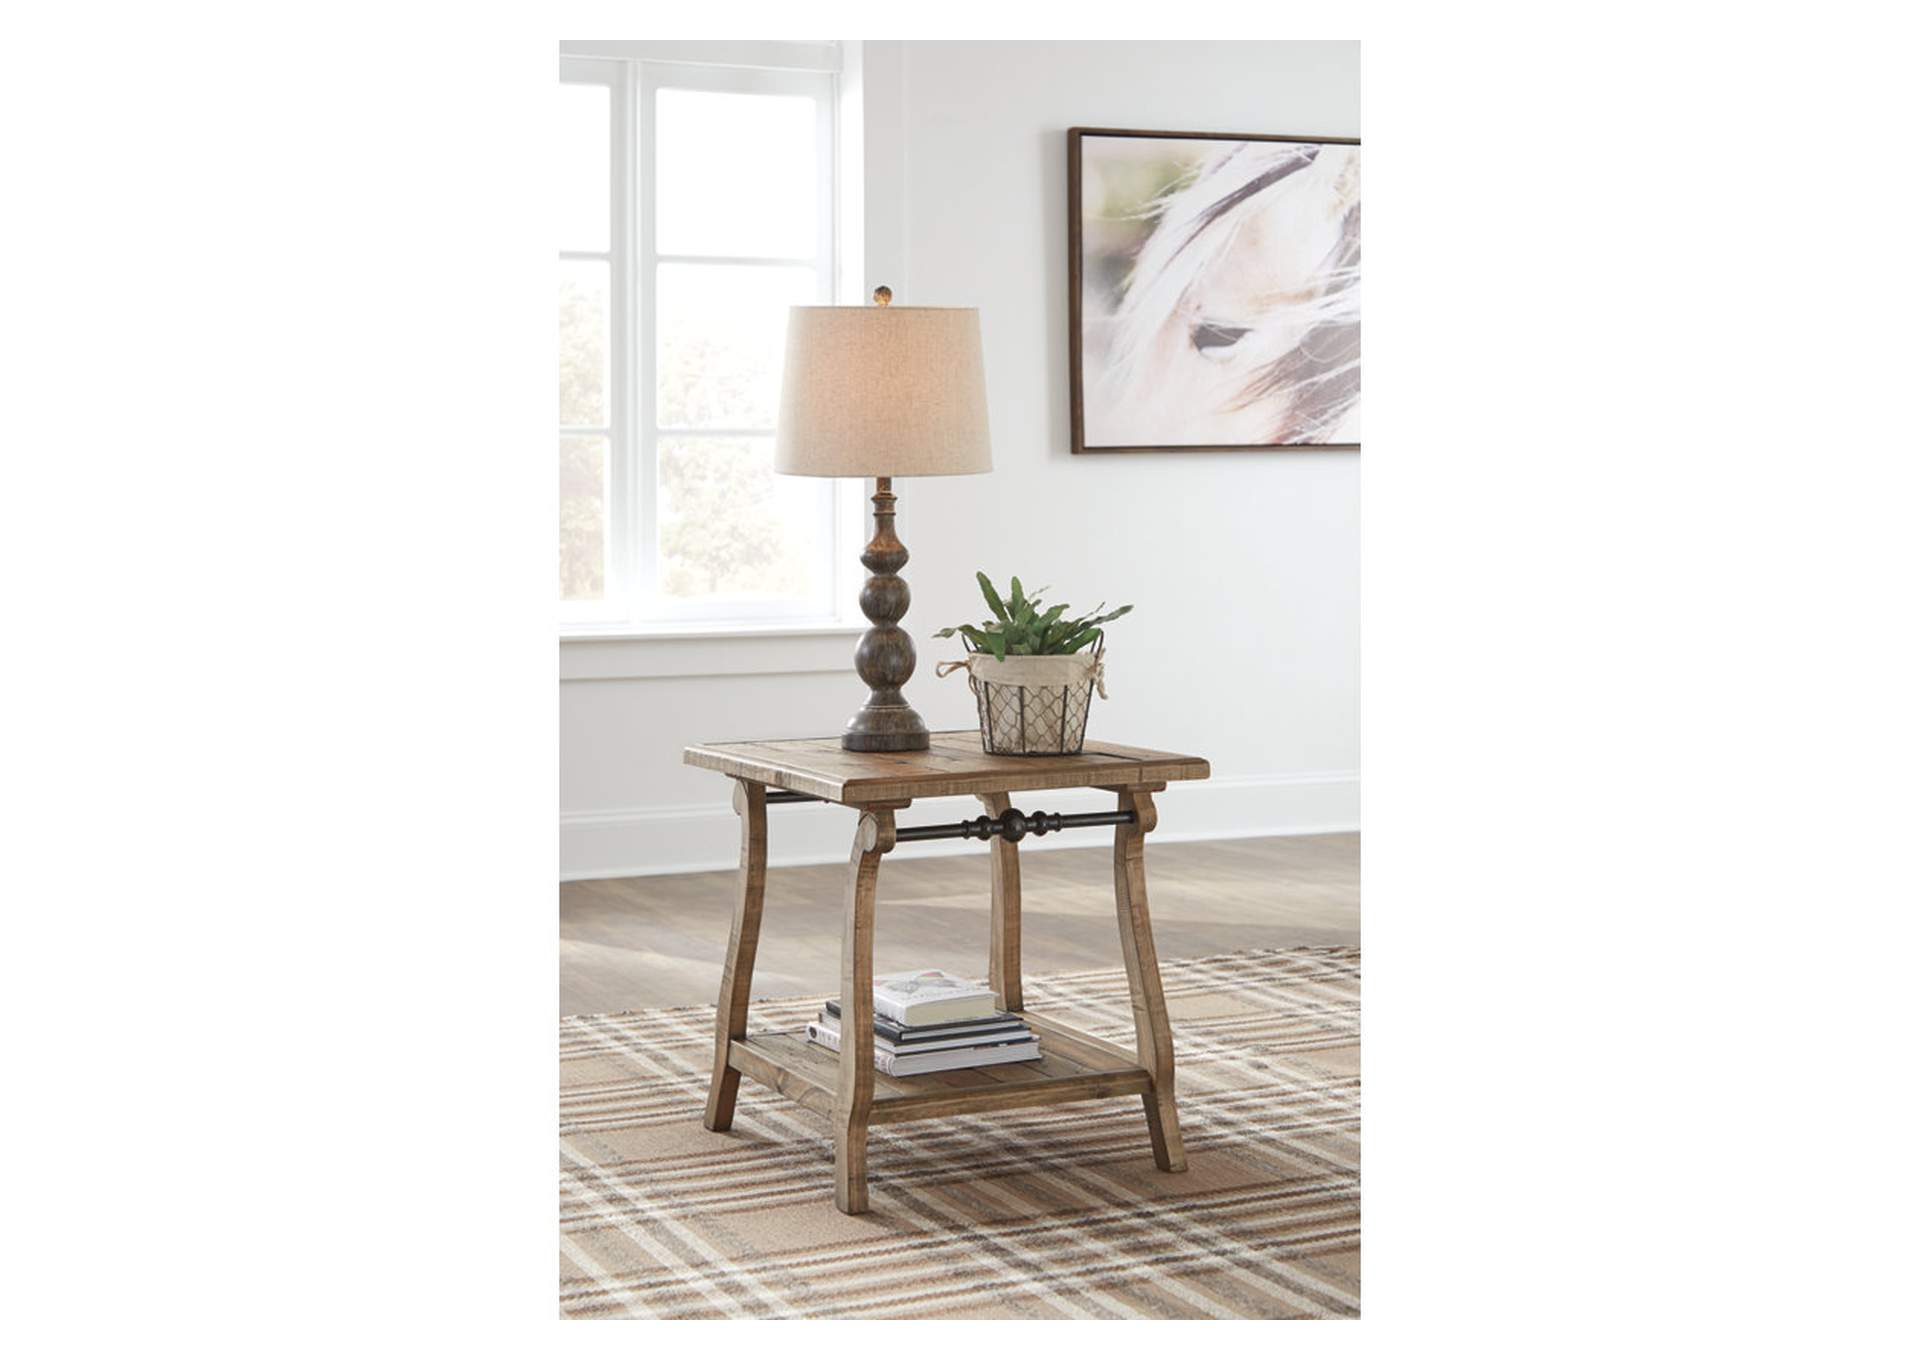 Dazzelton Two-Tone Rectangular End Table,Signature Design By Ashley